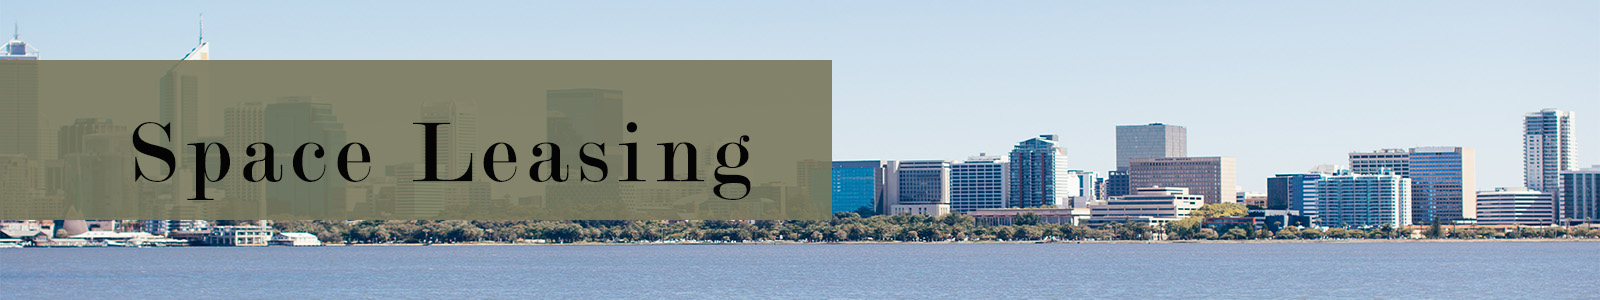 Space Leasing Banner